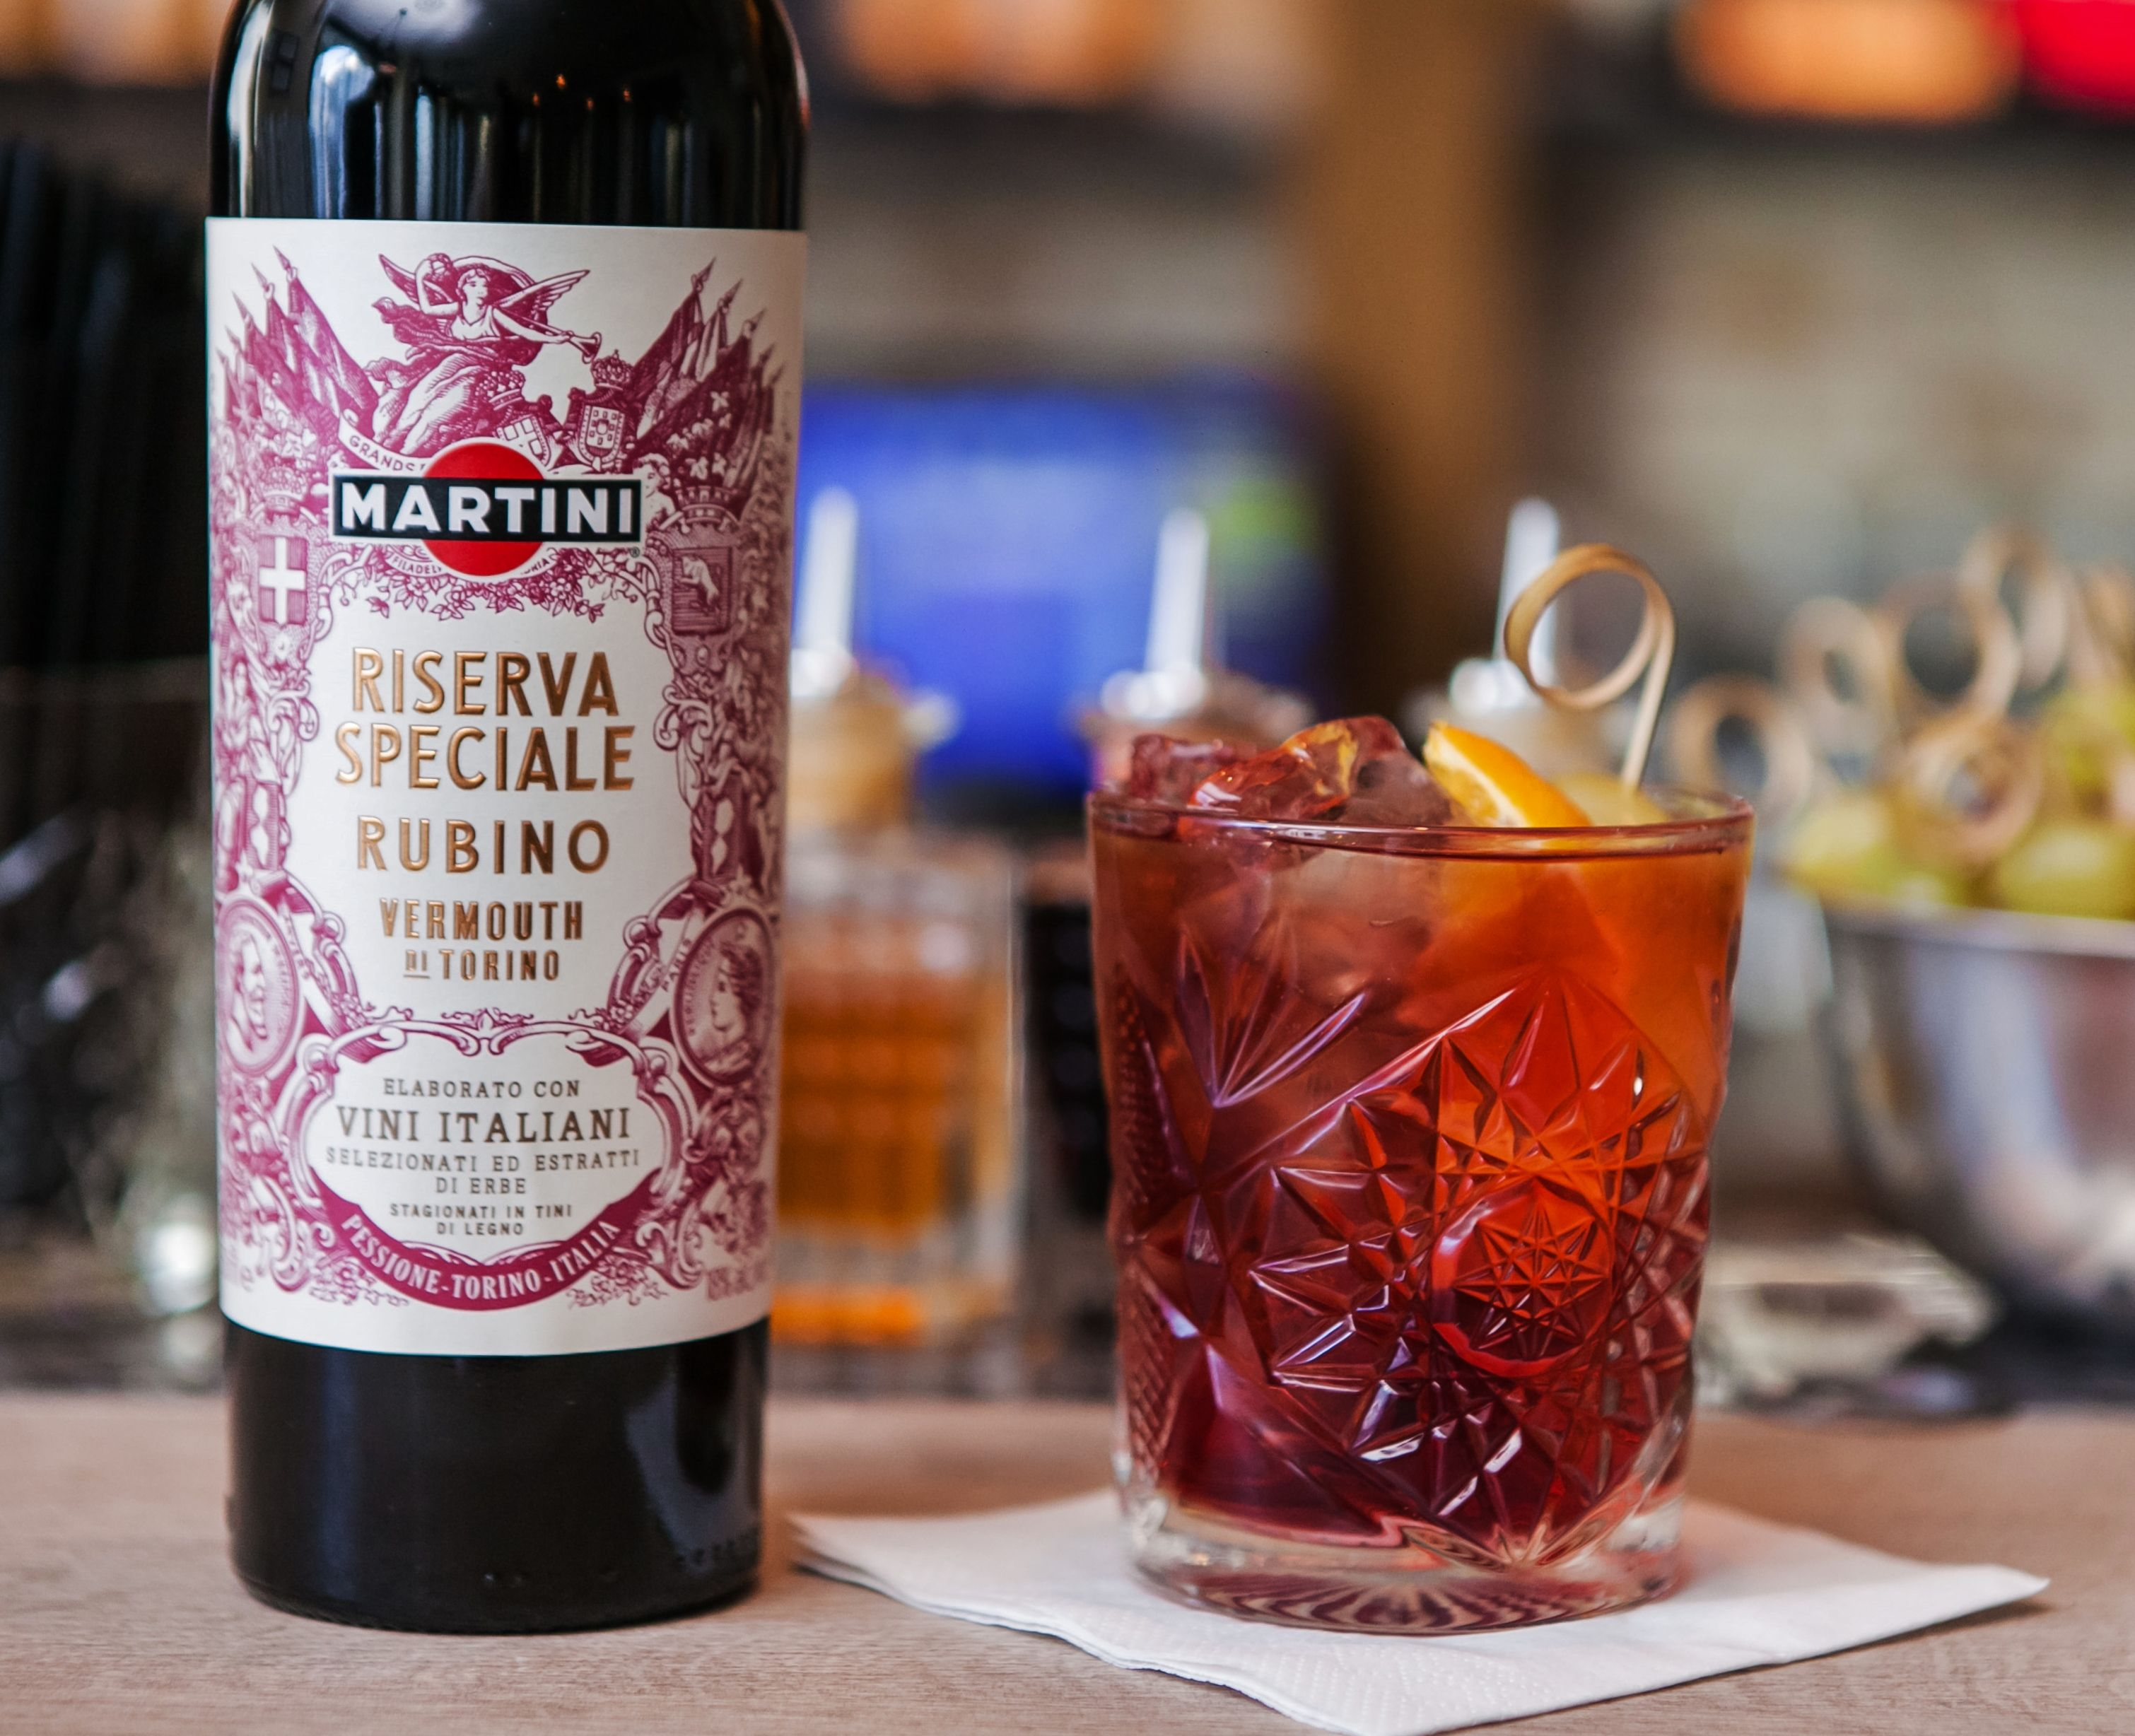 Vermut Martini Riserva Speciale Rubino Slow Food Food Food Bulletin Boards